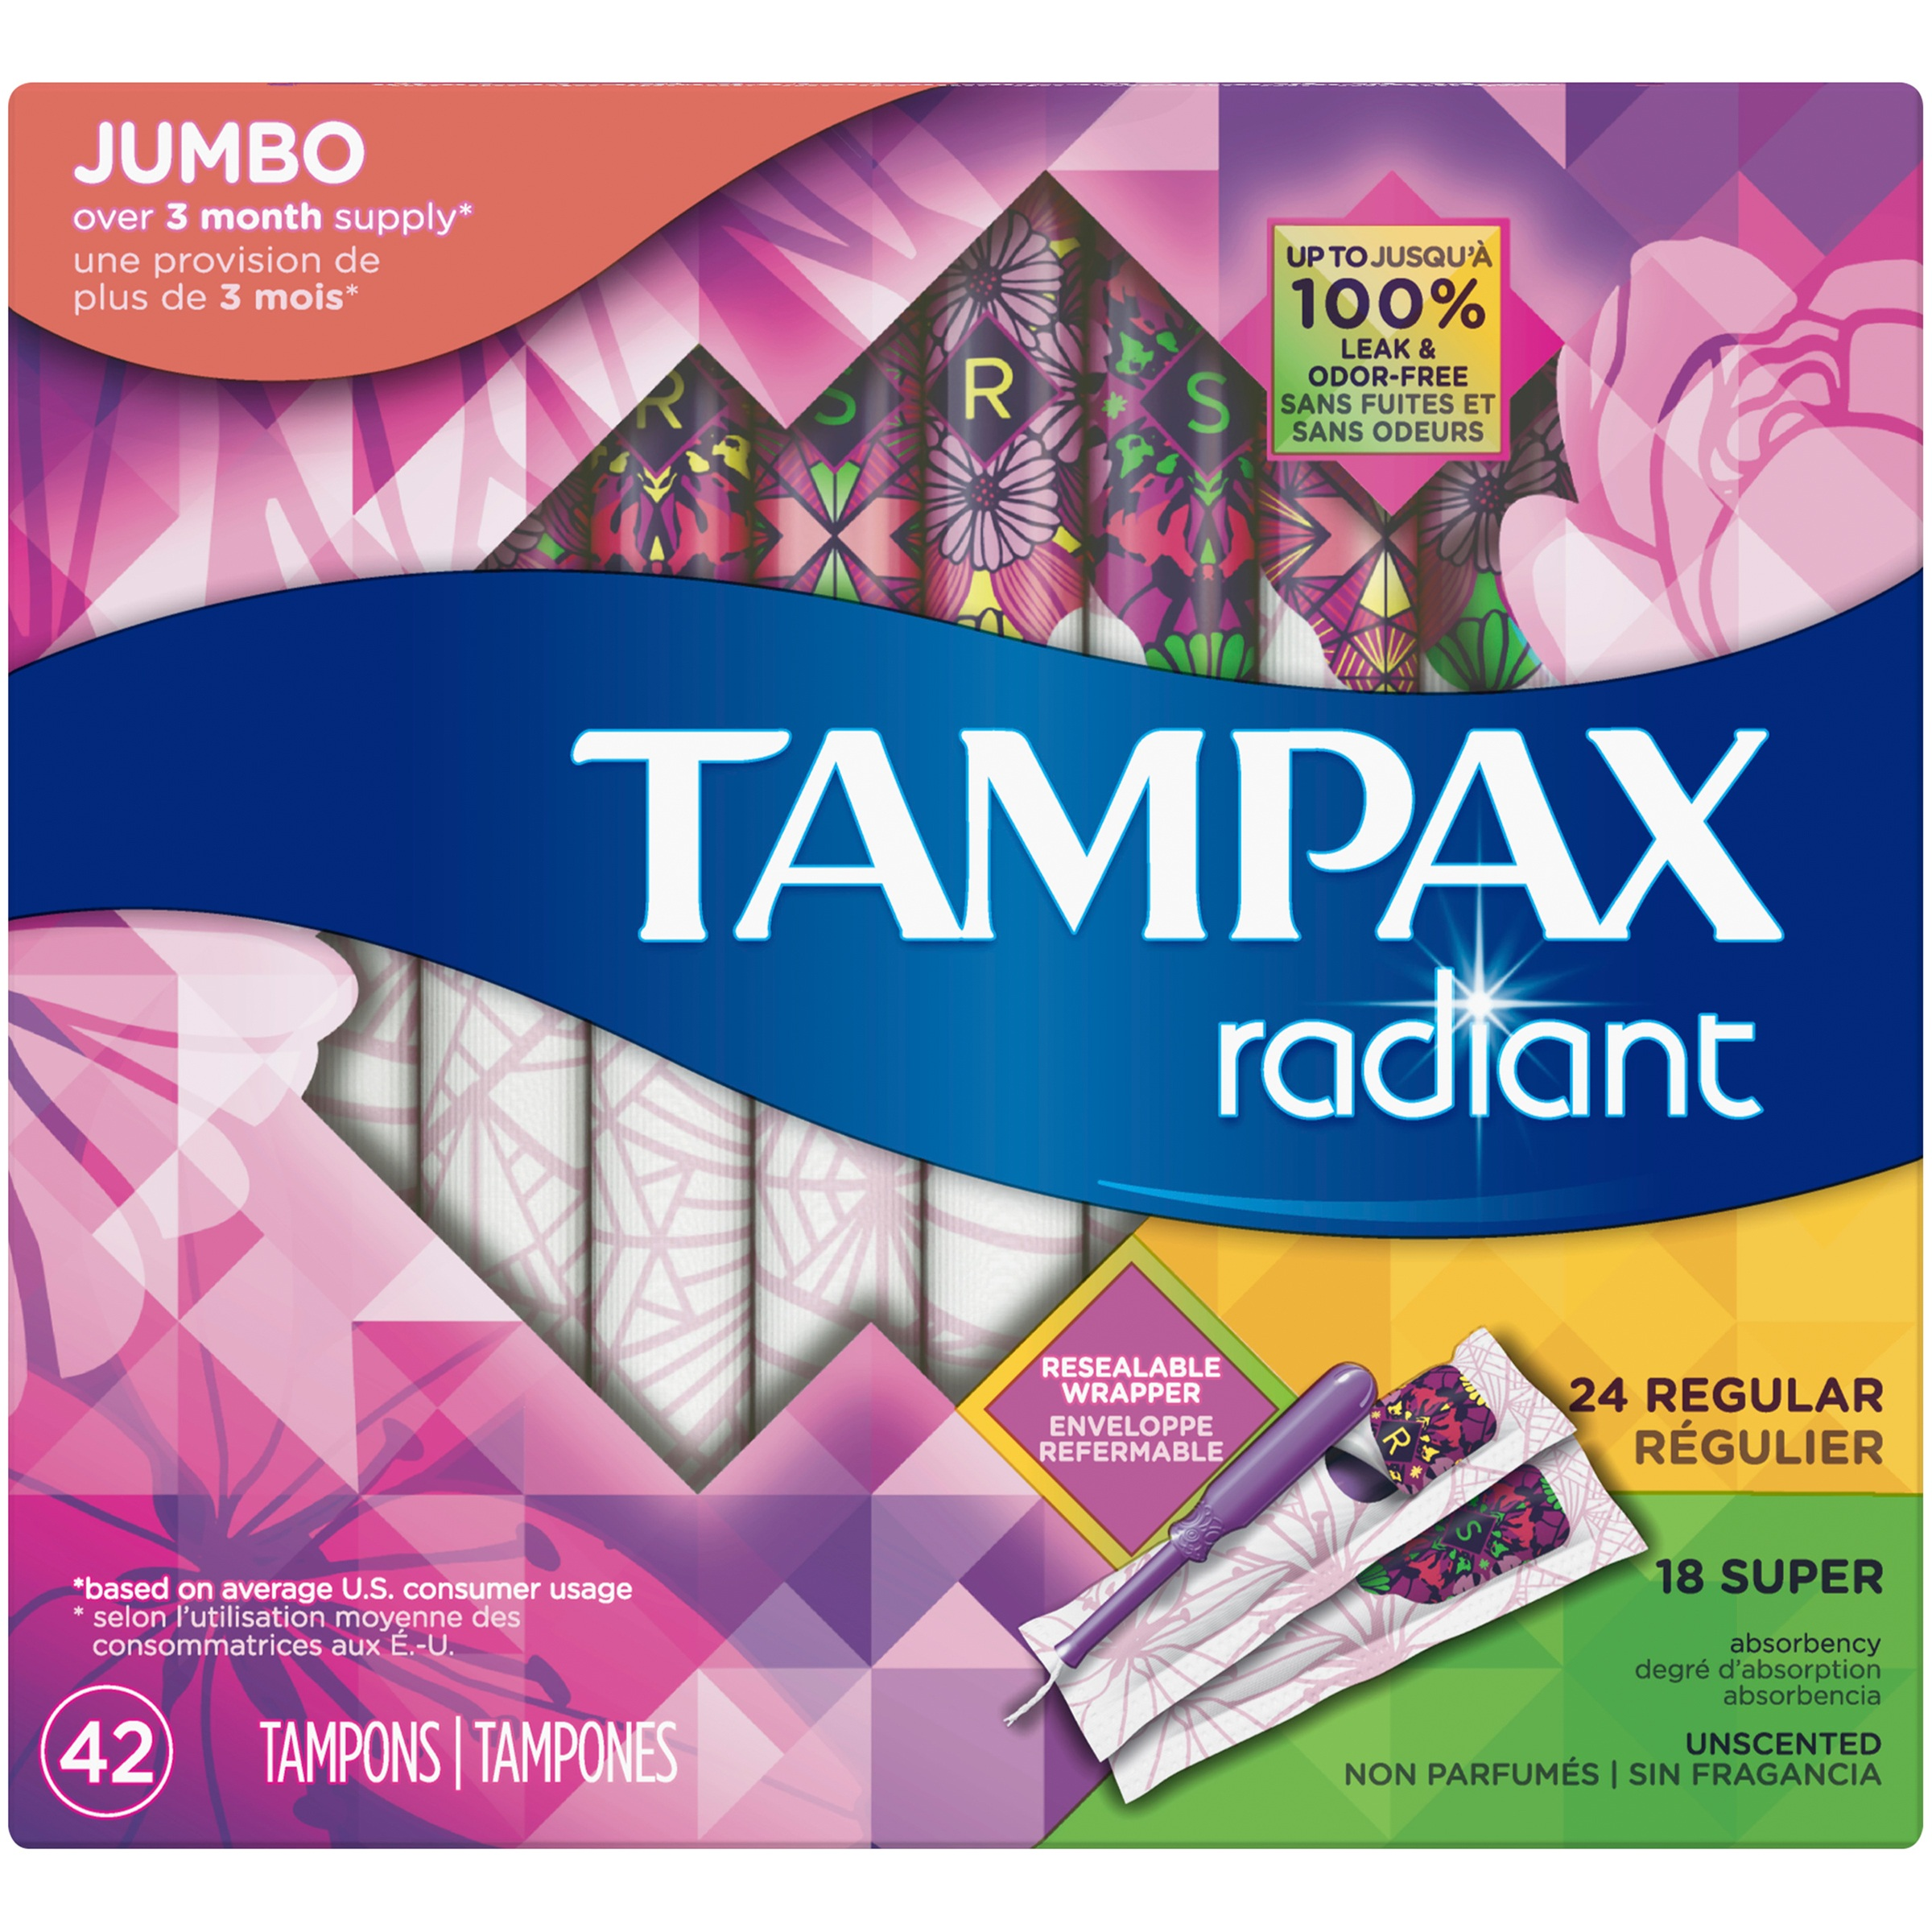 Tampax Radiant Plastic Tampons (Choose Size and Count)